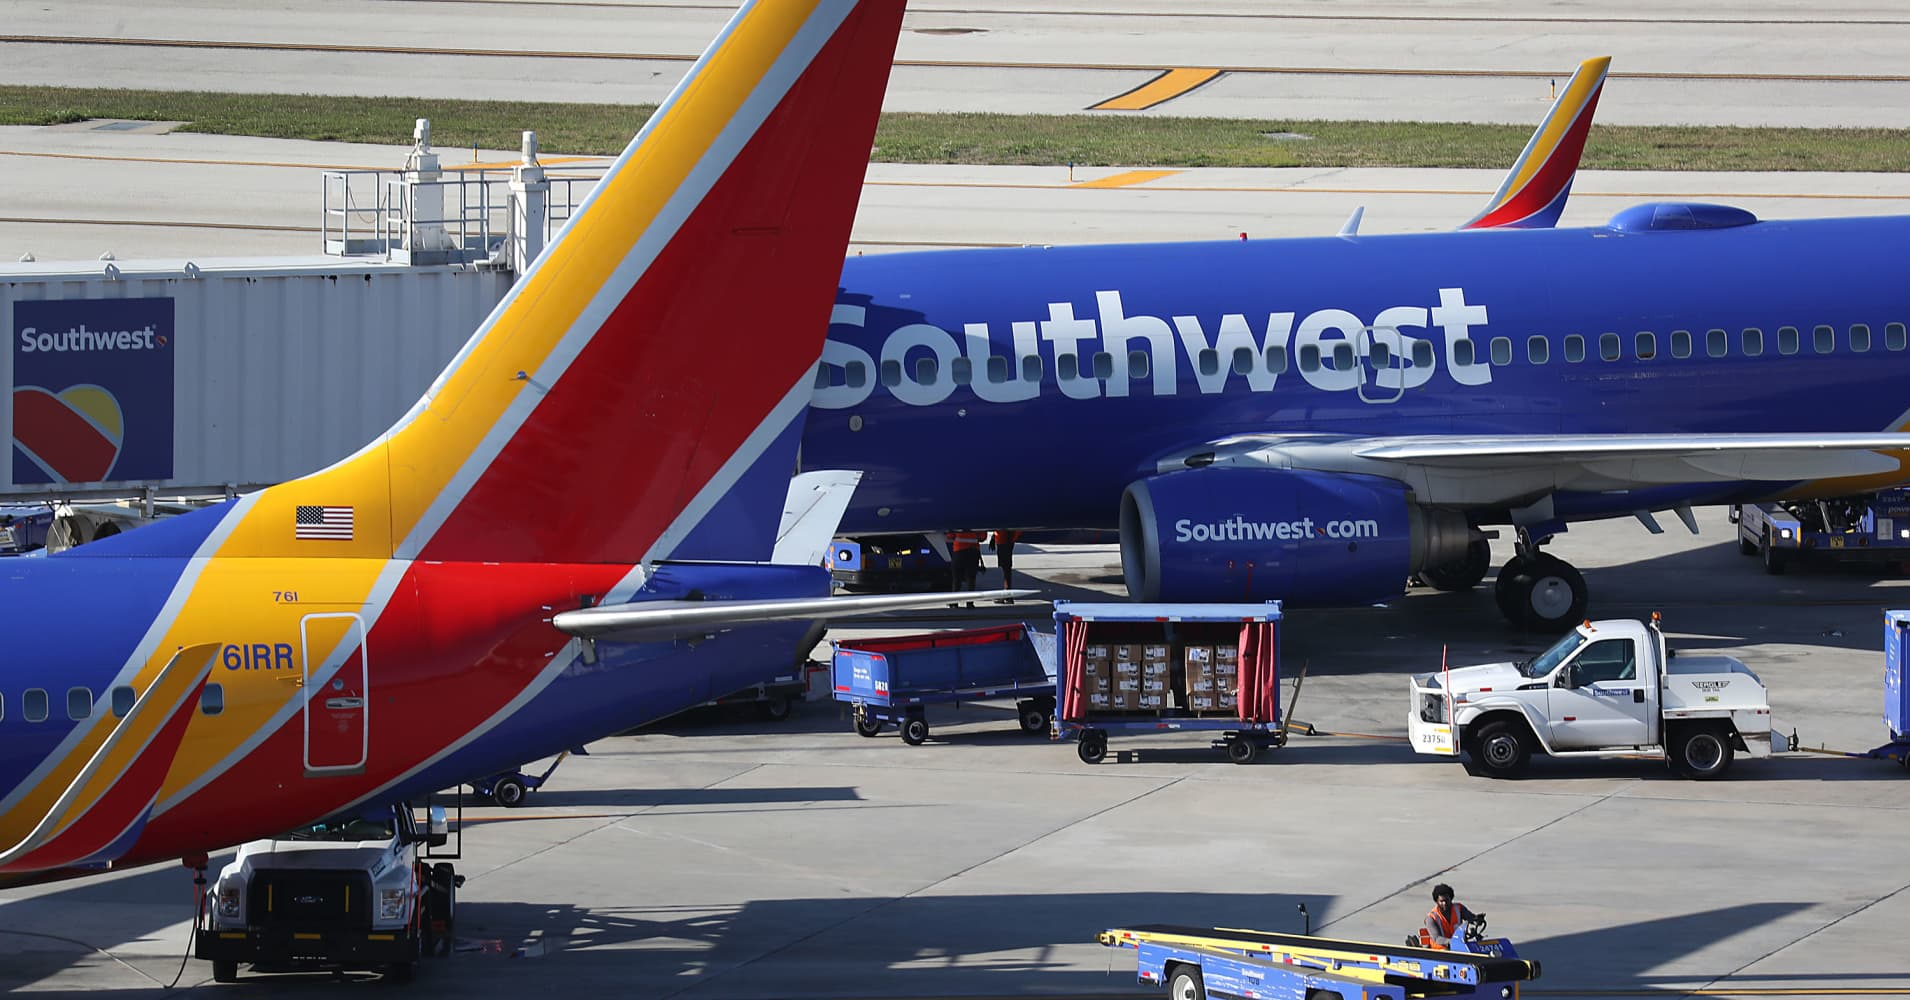 Southwest's maintenance problems are costing it millions a week, CEO says